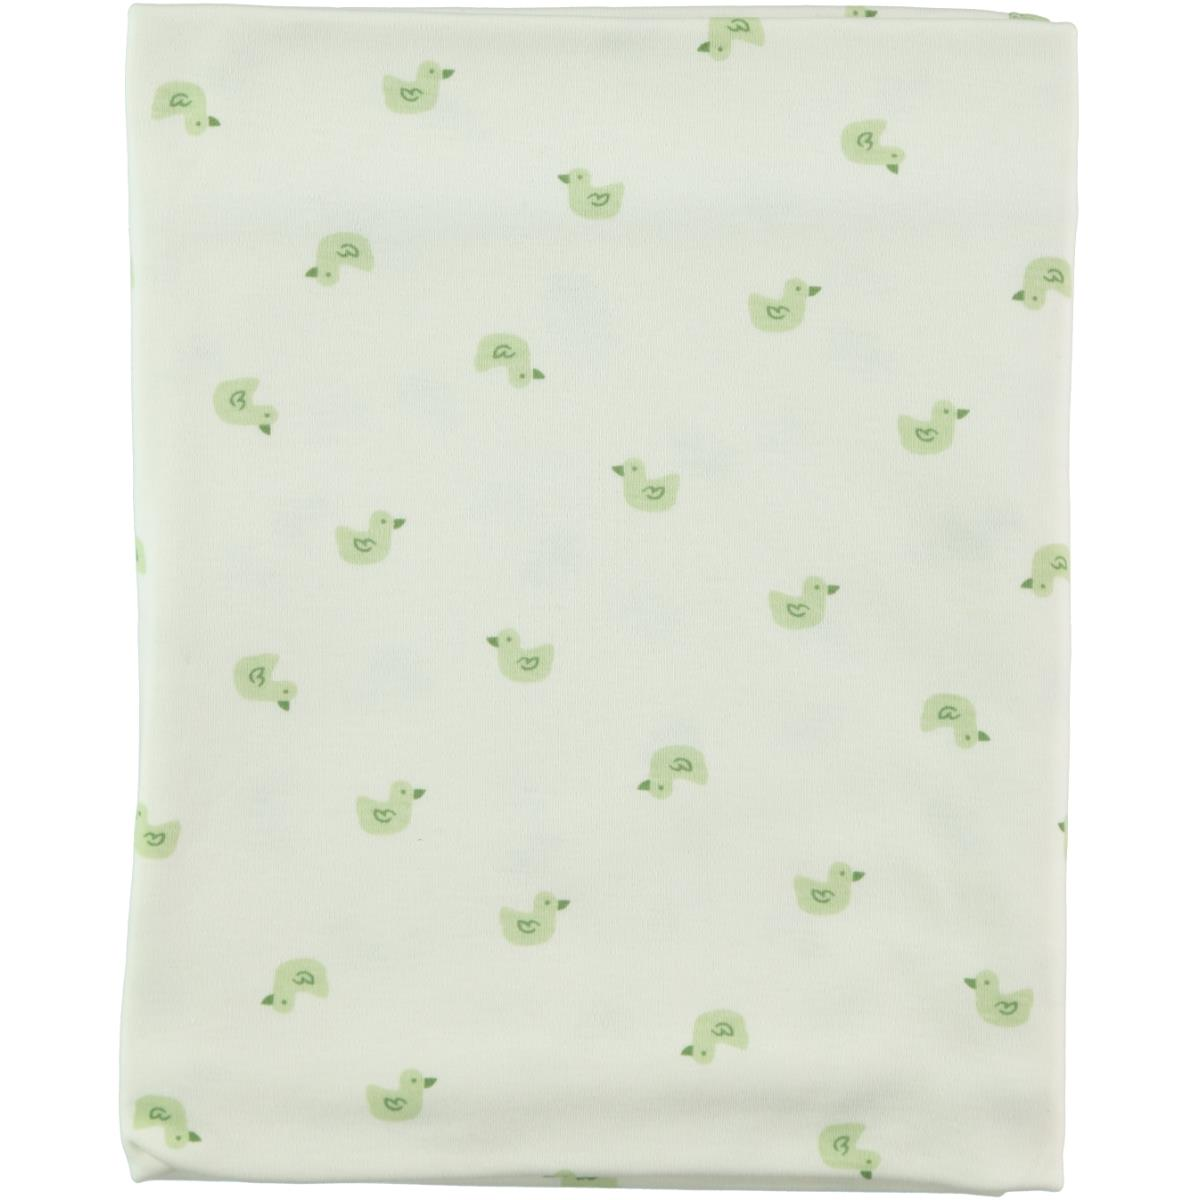 Civil Baby Yesil baby double layer Blanket 80x 90 cm.